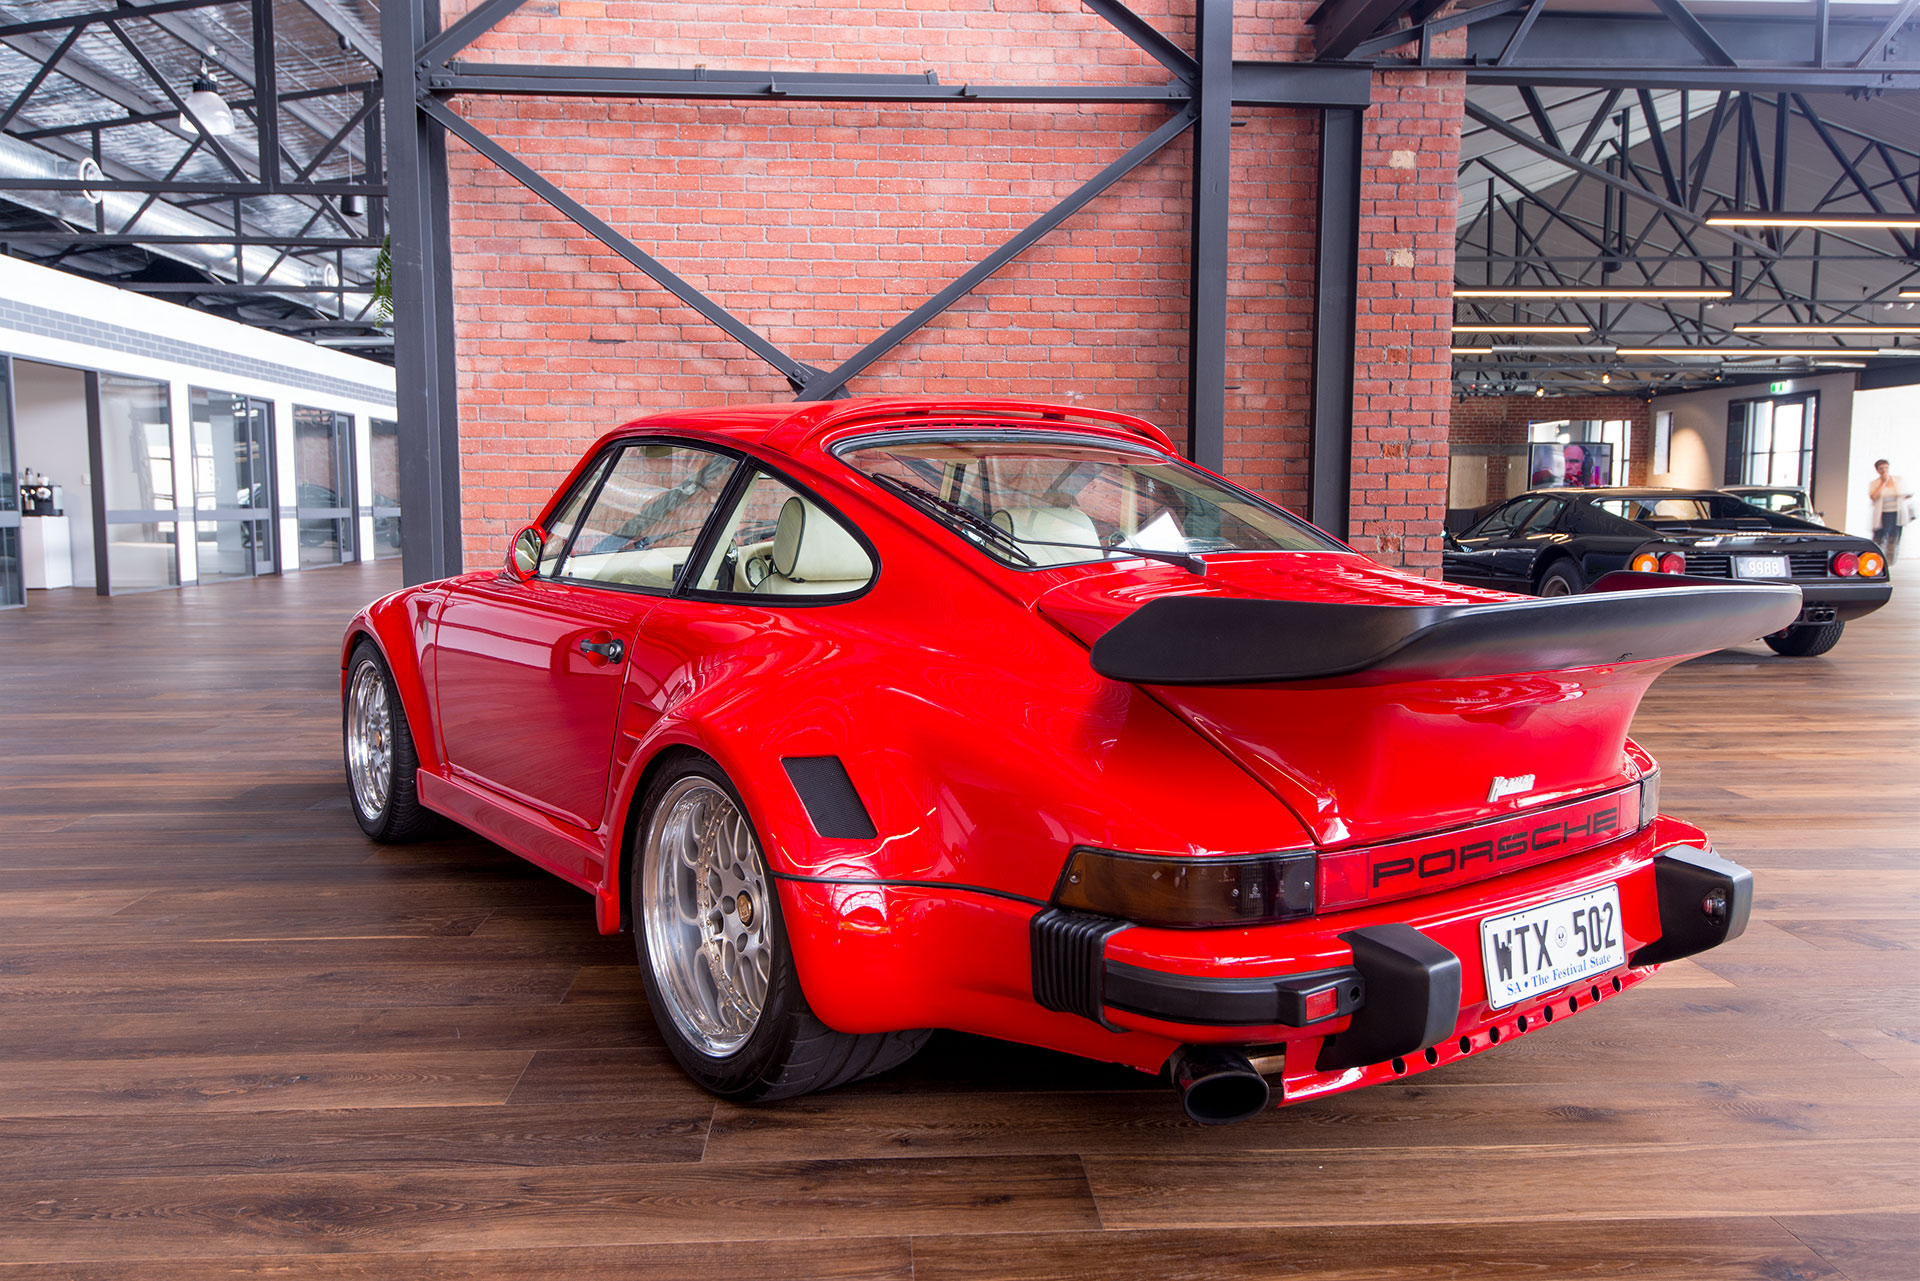 Cars For Sale Adelaide >> 1978 Porsche Kremer Turbo For Sale - Richmonds Classic & Sports Cars